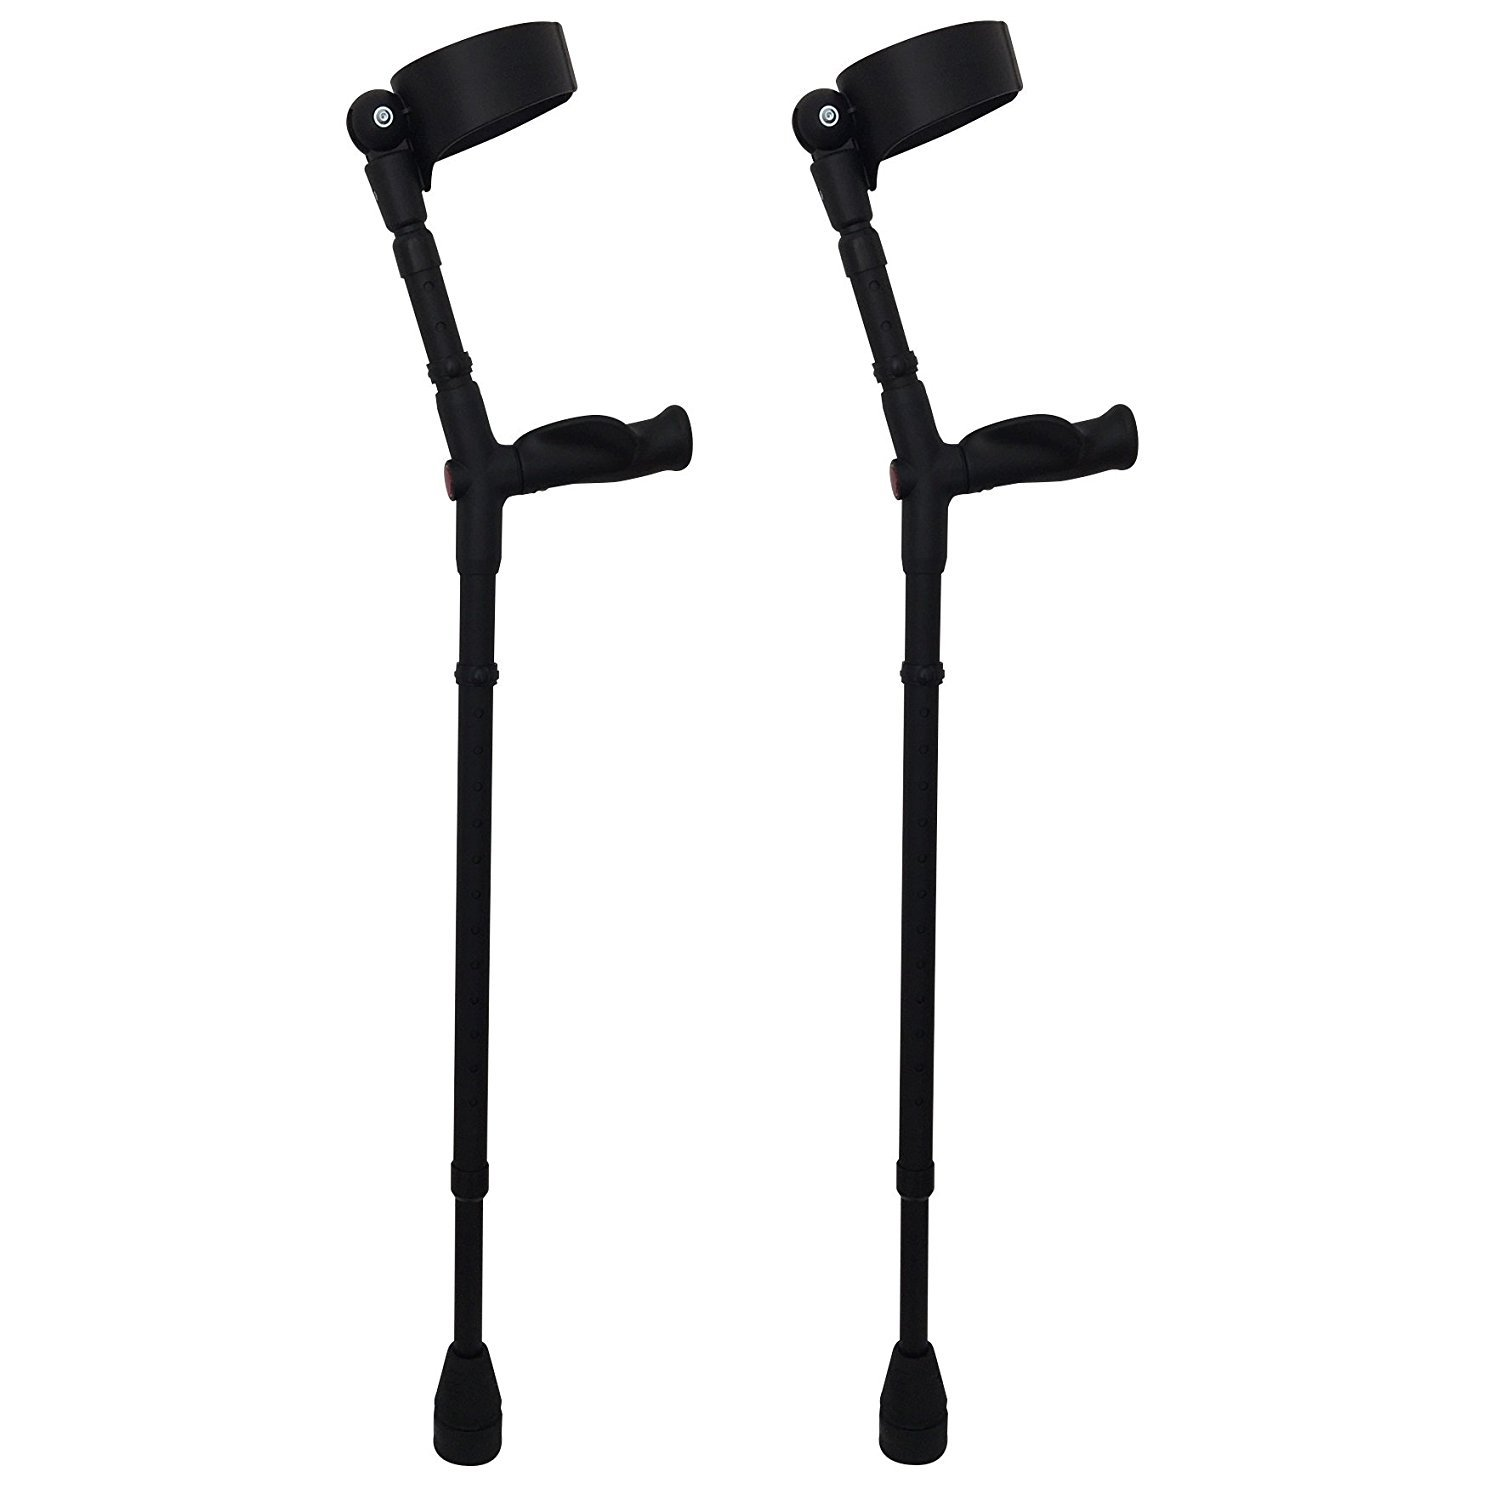 Thomas Fetterman Walk Easy 495 Adjustable Forearm Crutches Customizable with Choice of Tips (Adjustable with Tornado Rain Tips)